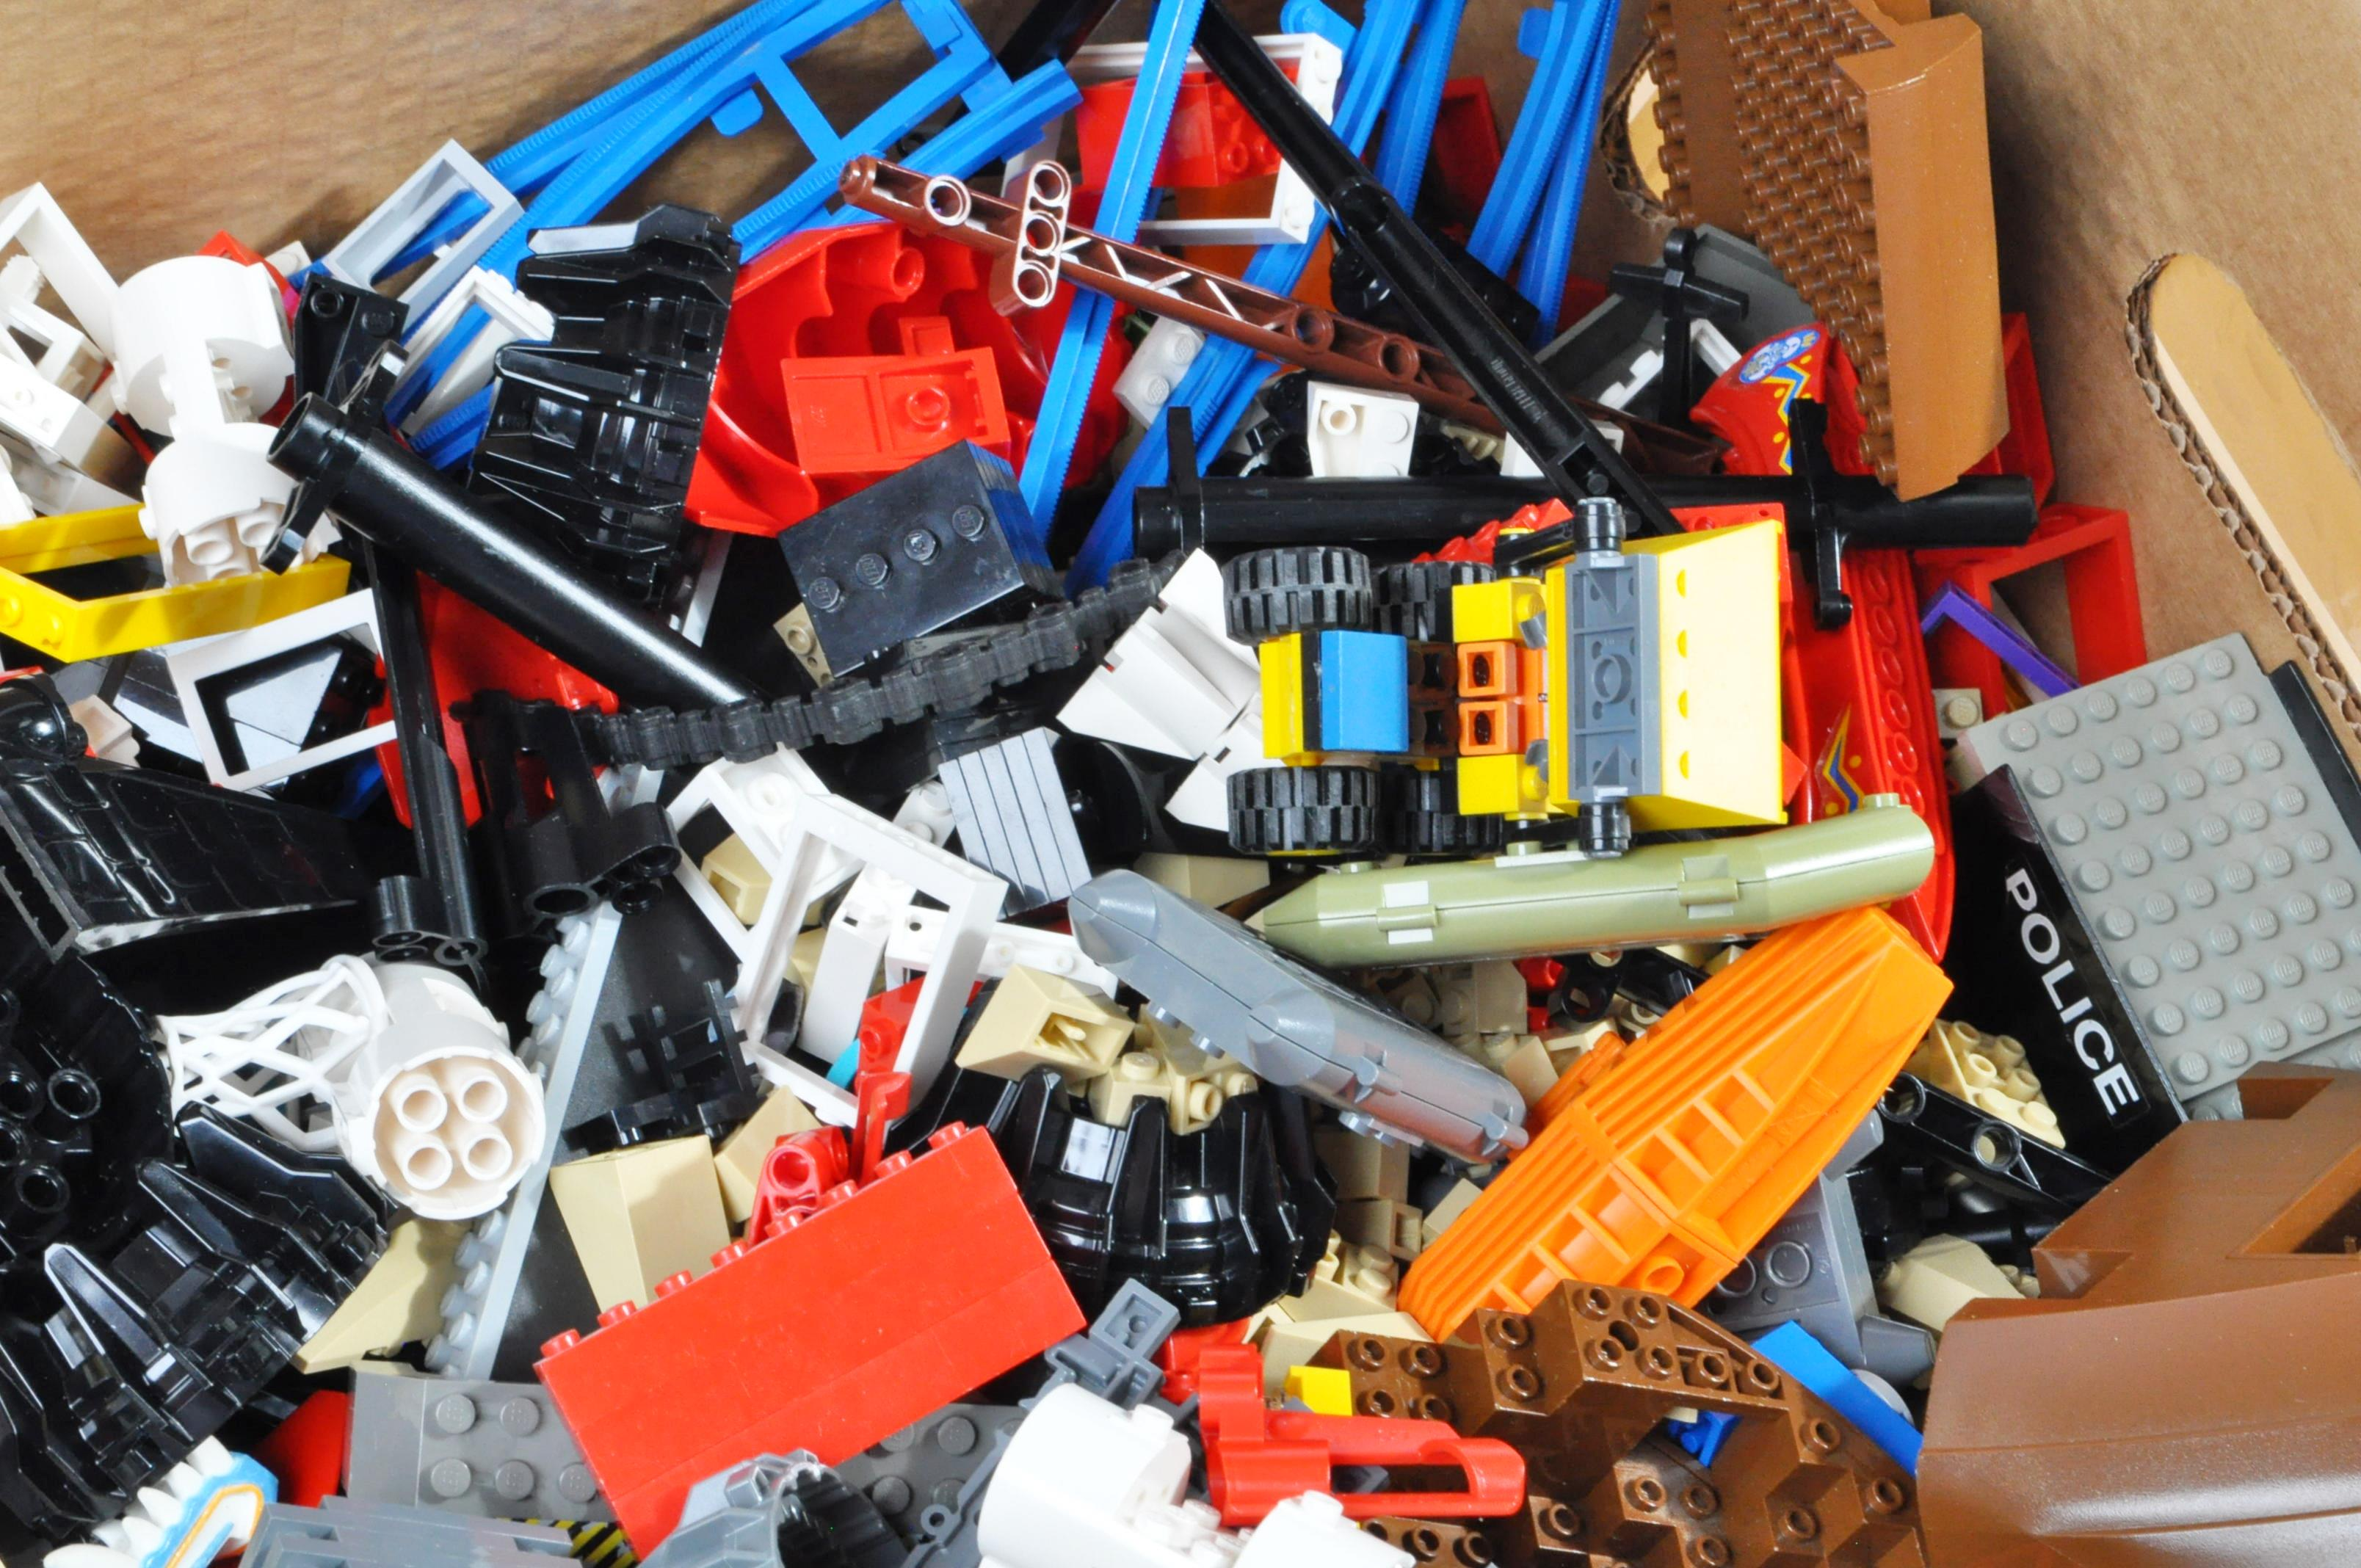 LARGE COLLECTION OF ASSORTED LOOSE LEGO BRICKS - Image 6 of 6